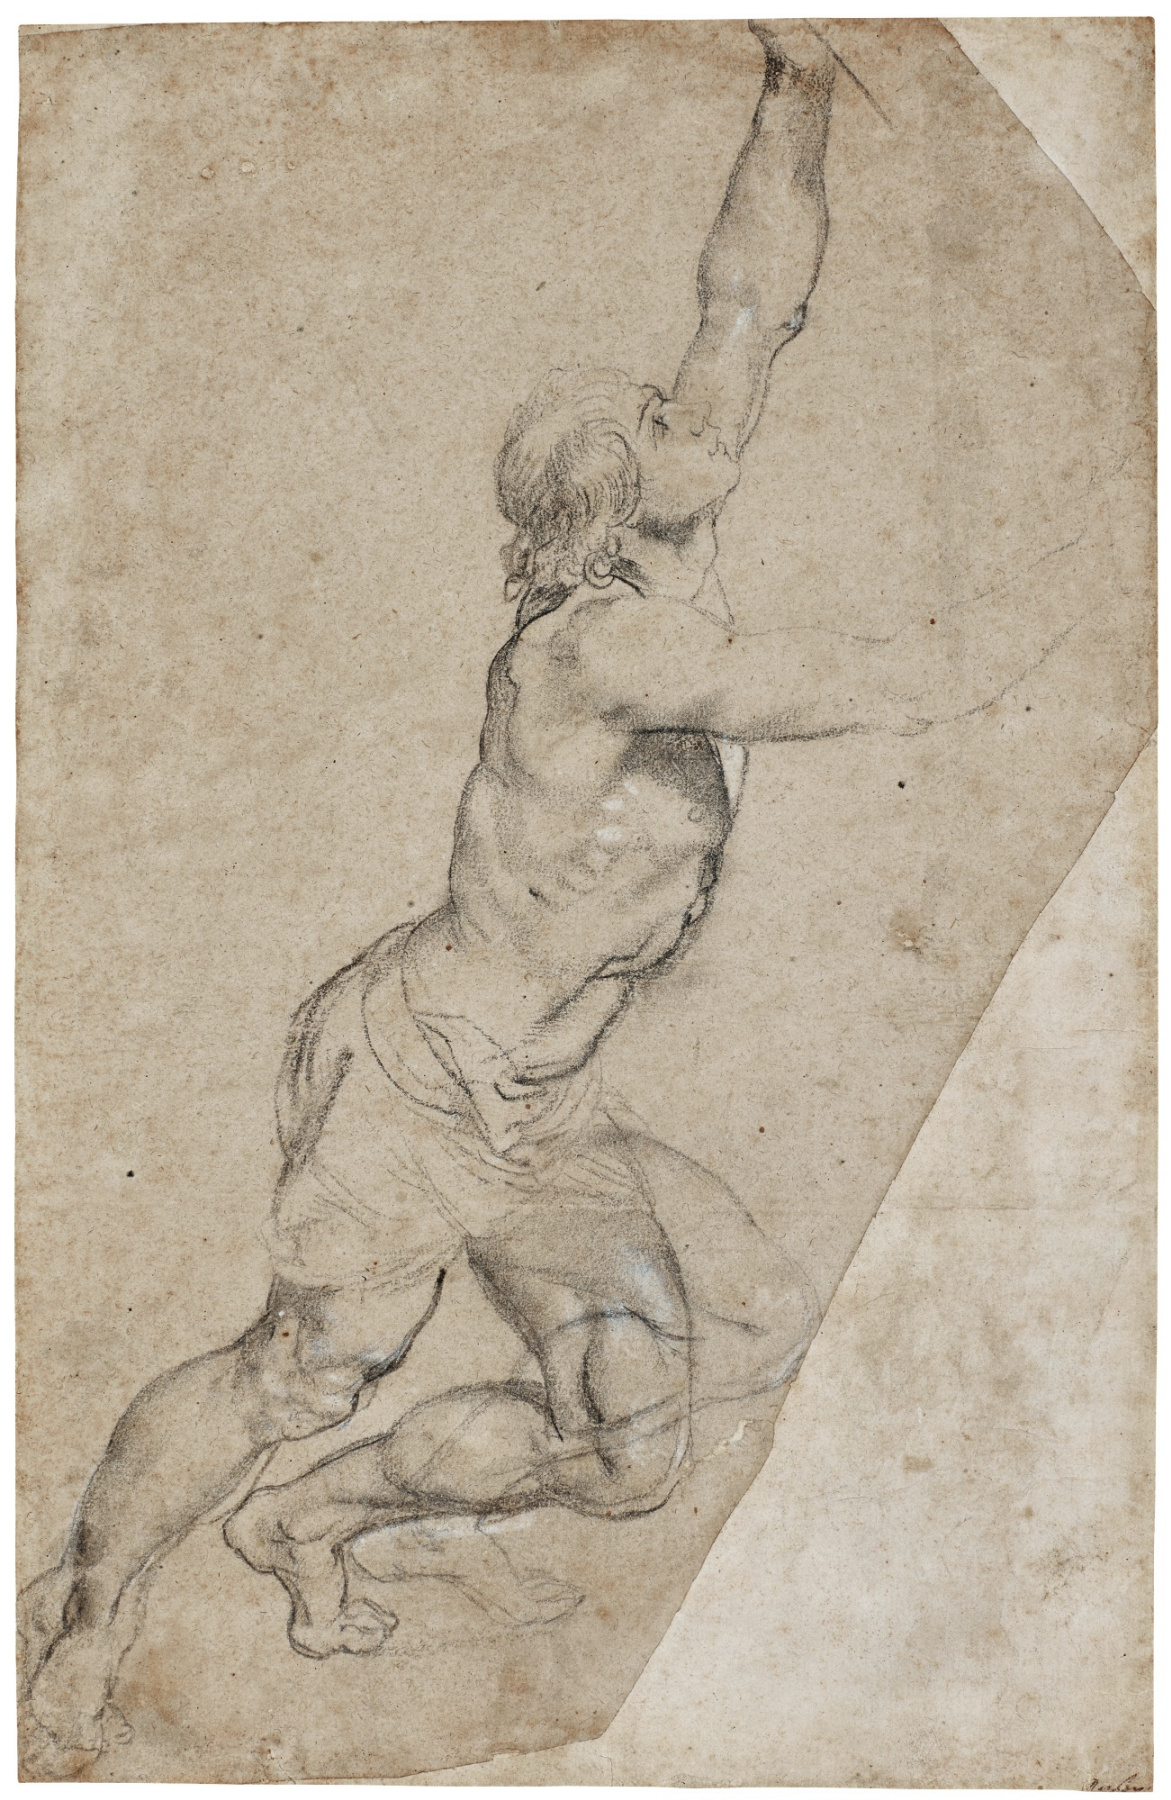 Peter Paul Rubens. Nude Study of a Young Man with Raised Arms